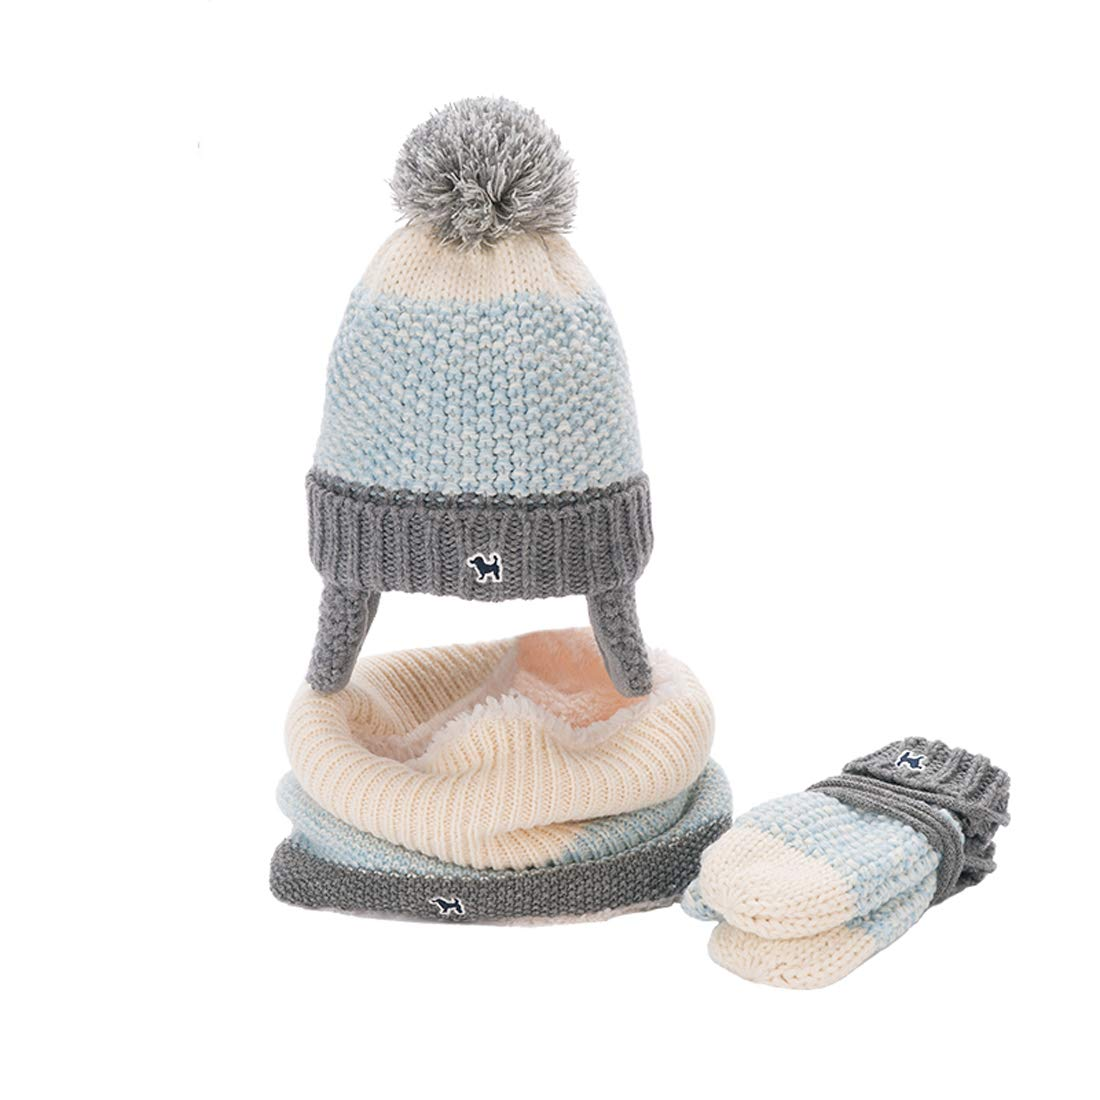 LoveKids Sherpa Lined Printed Hat/Scarf/Glove Knitted Accessory Set for Kids(27022-Light Blue-M)